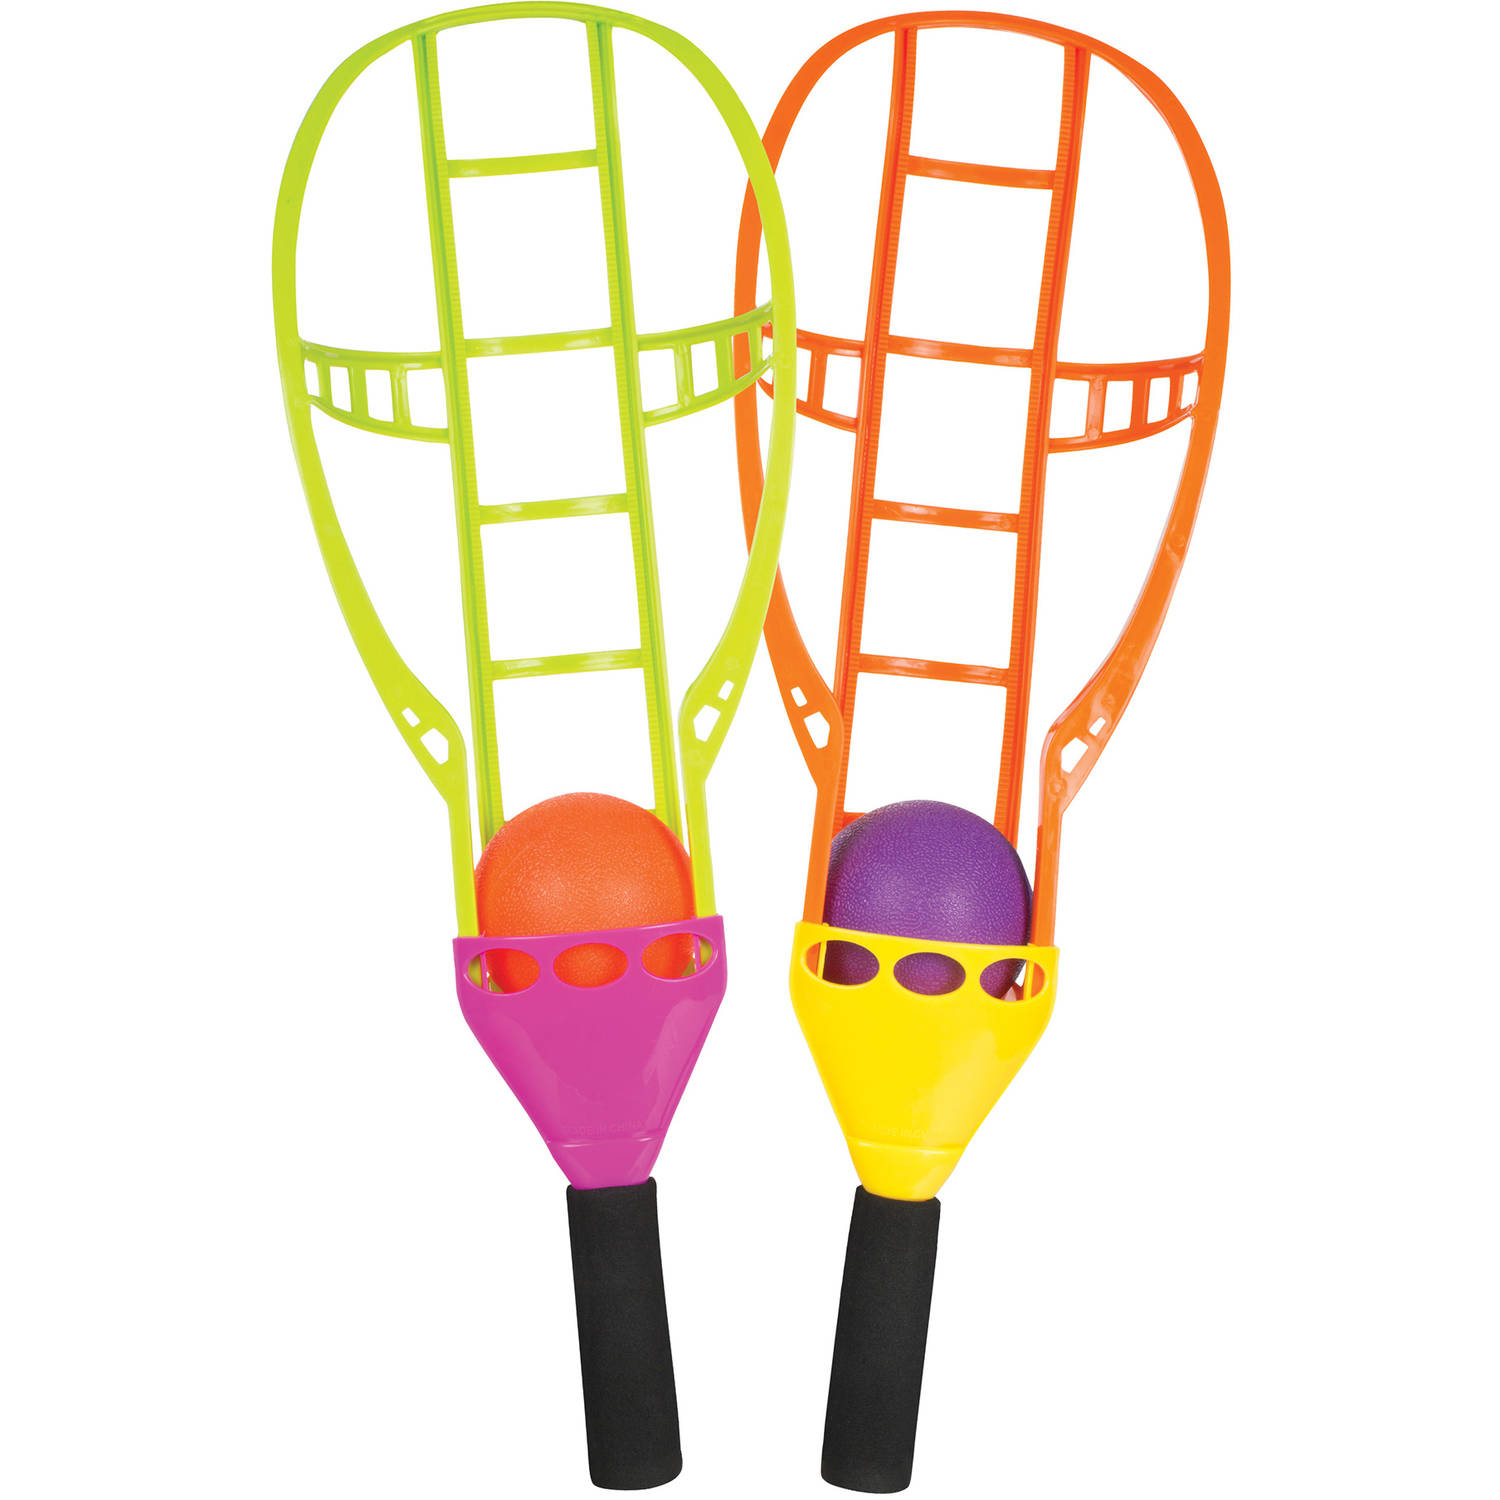 Toysmith Chuck N Catch Ball and Racket Game